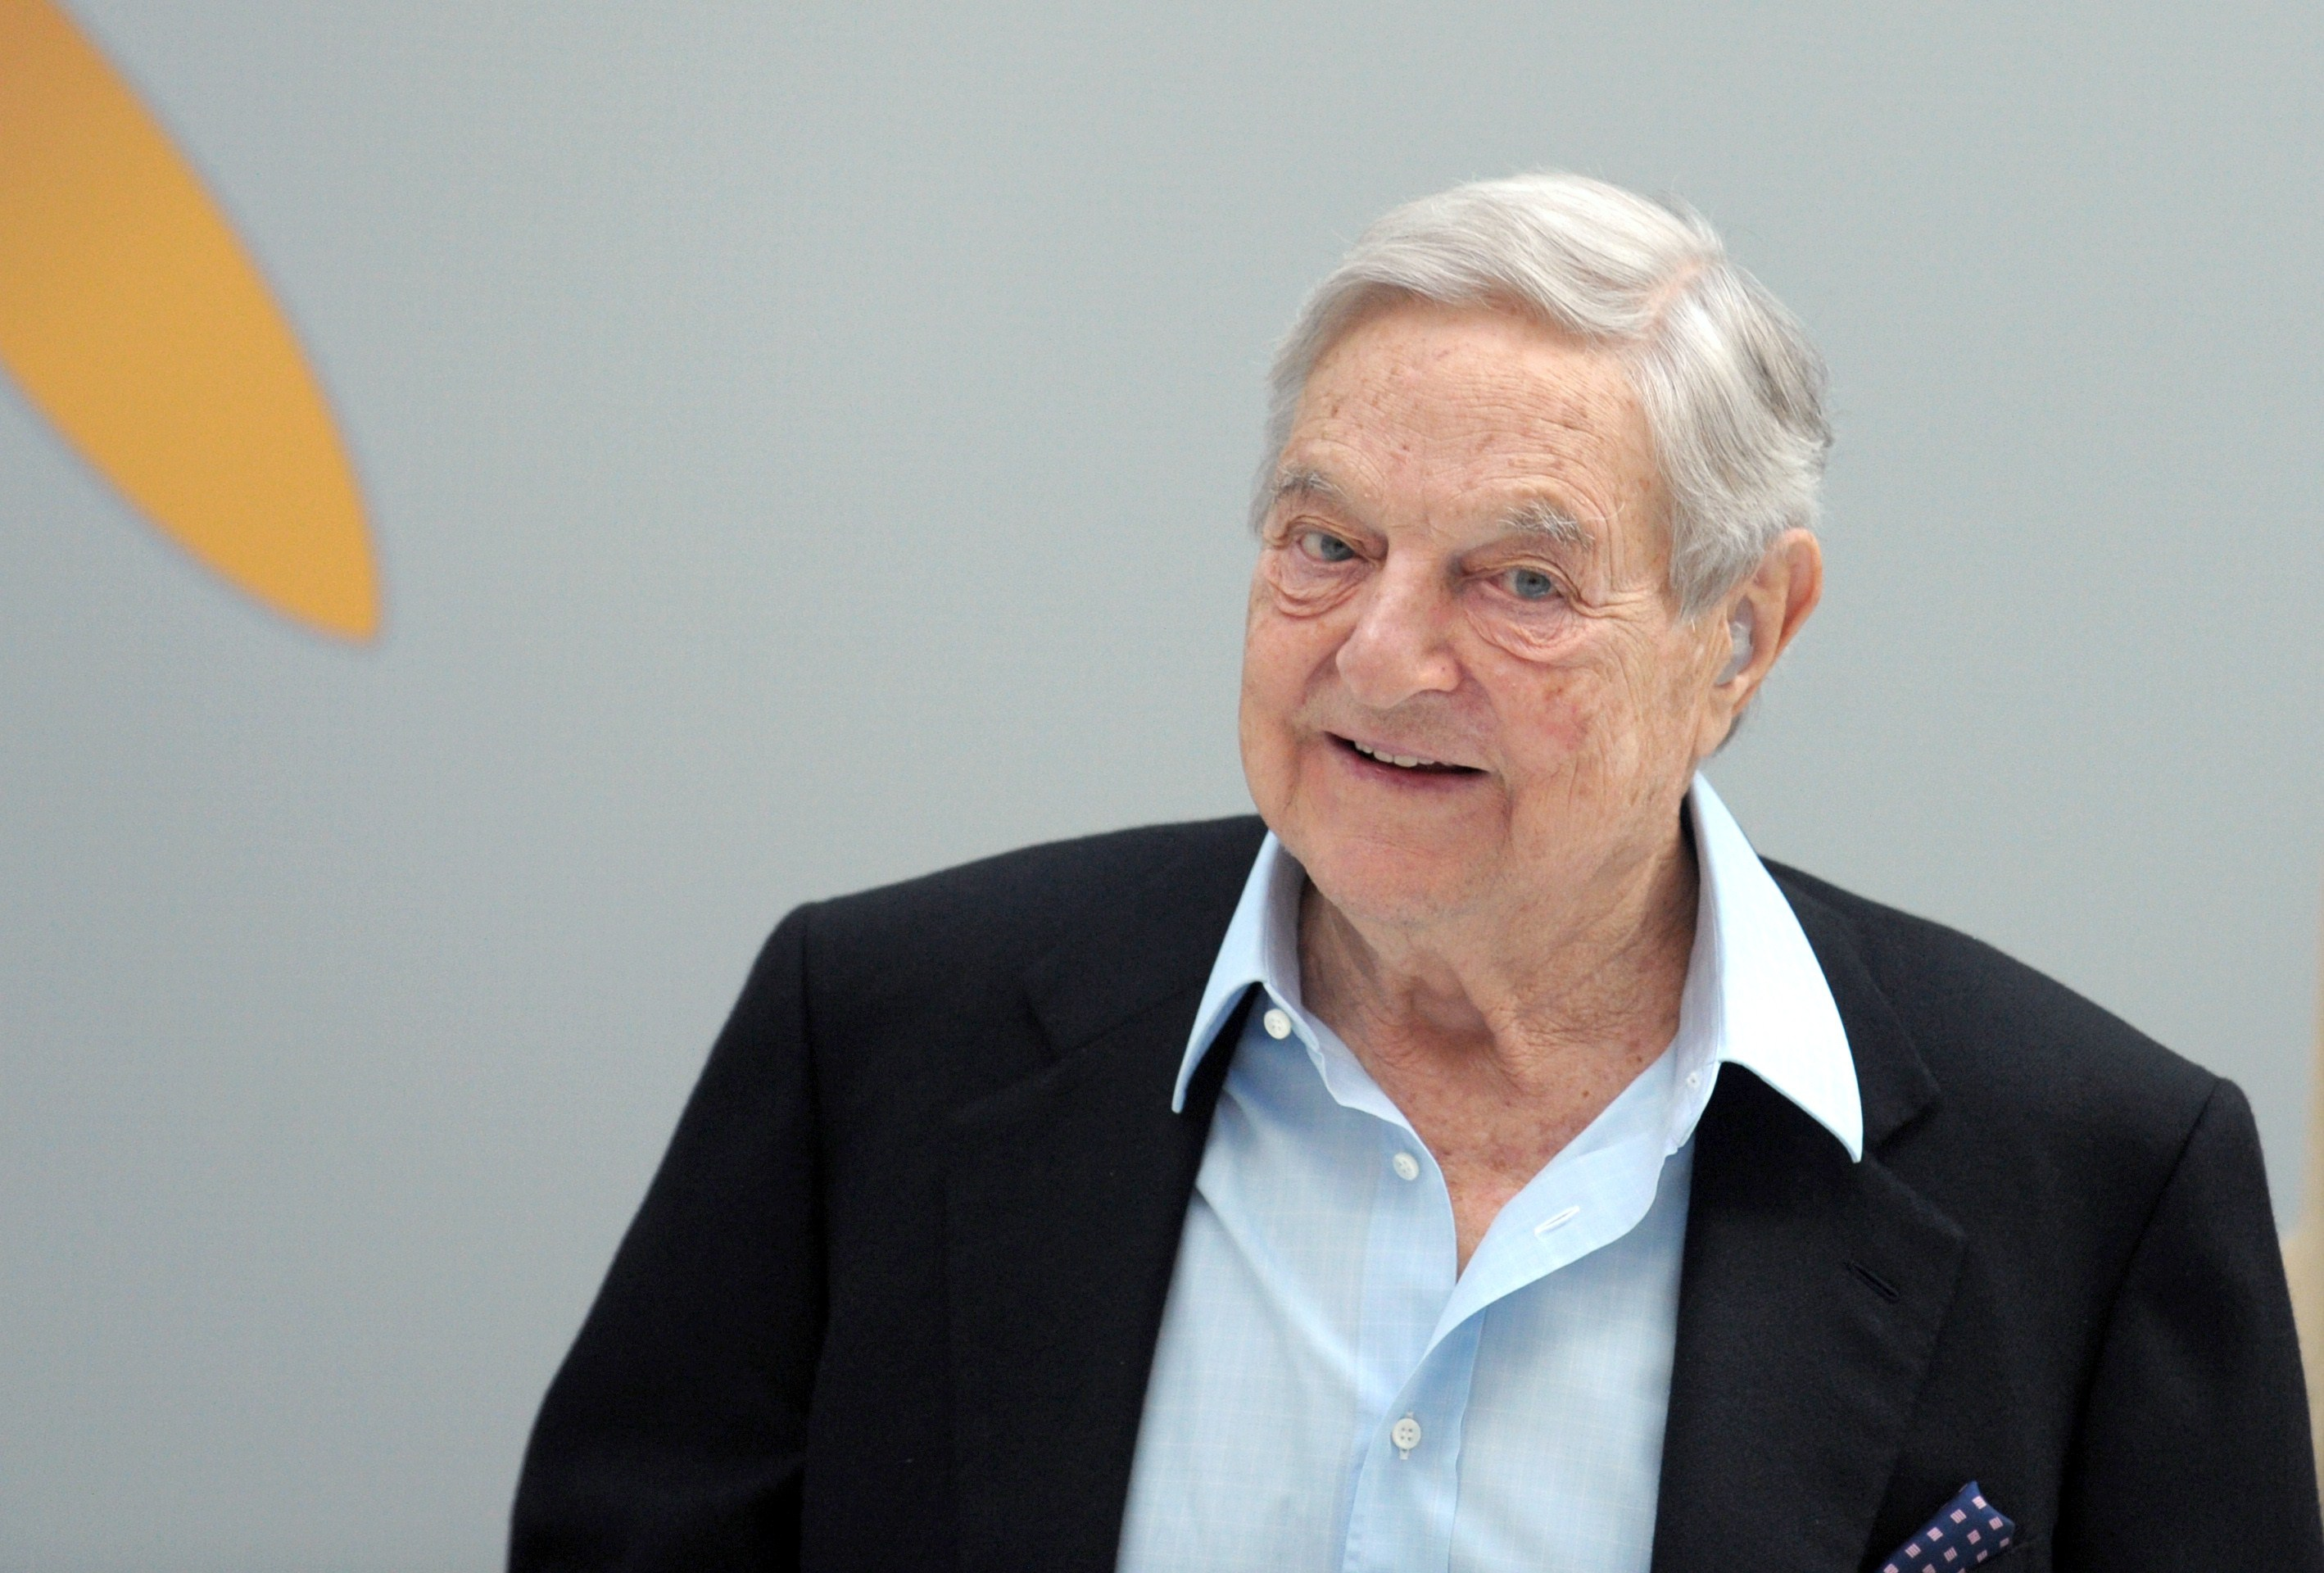 George Soros arrives to attend a session of the 6th annual conference of the Institute for new economic thinking (INET) at the OECD headquarters in Paris on April 9, 2015.